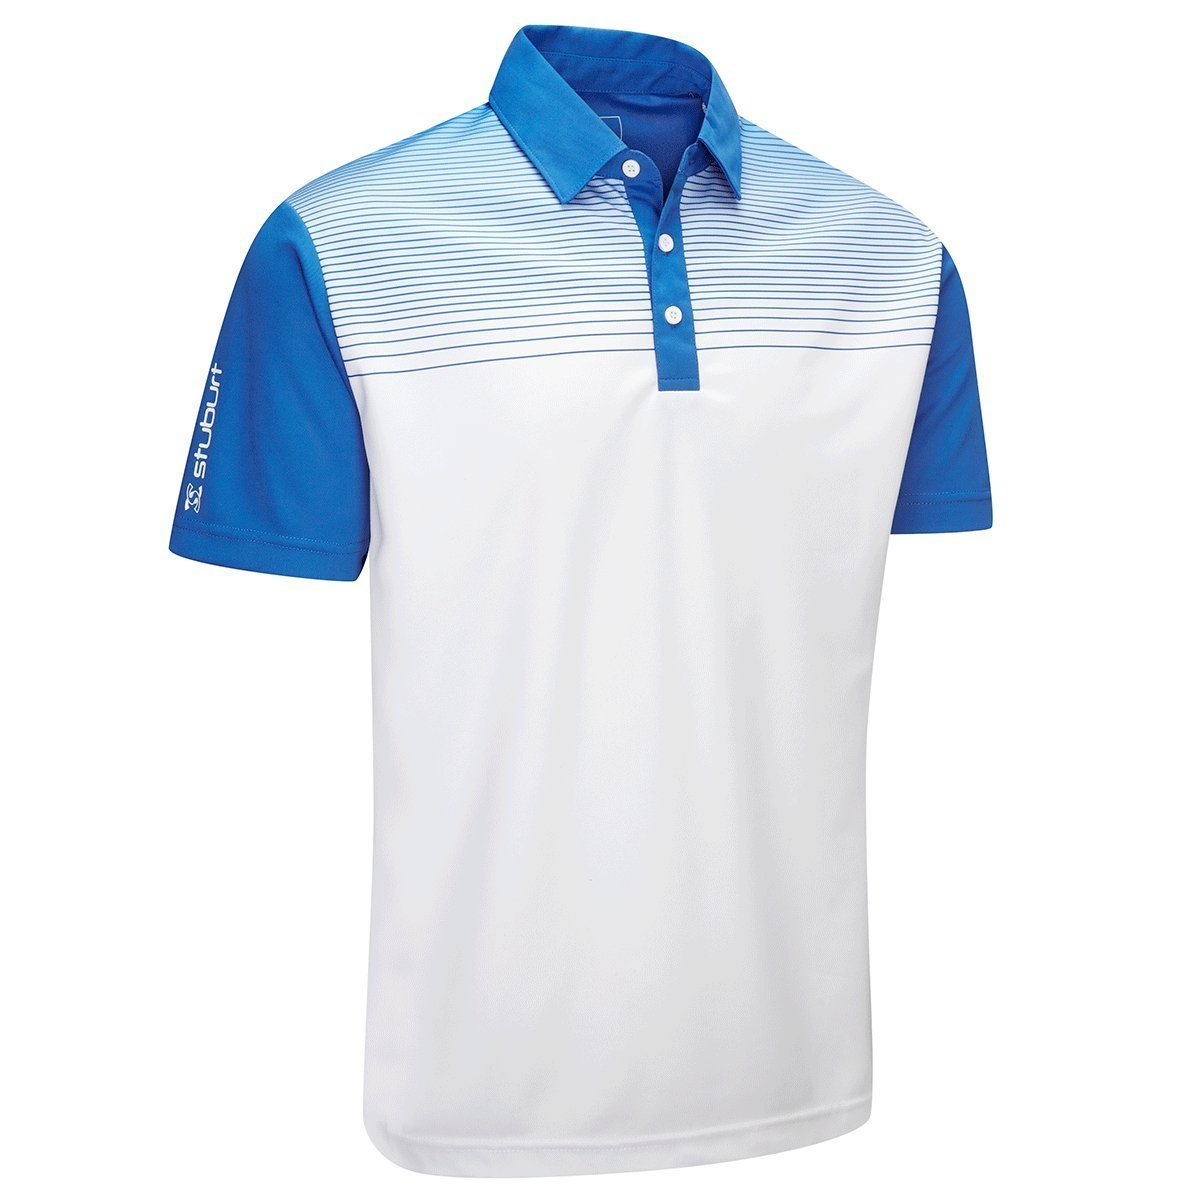 Best Golf Polo Shirts 2018 Look Your Best On The Fairways